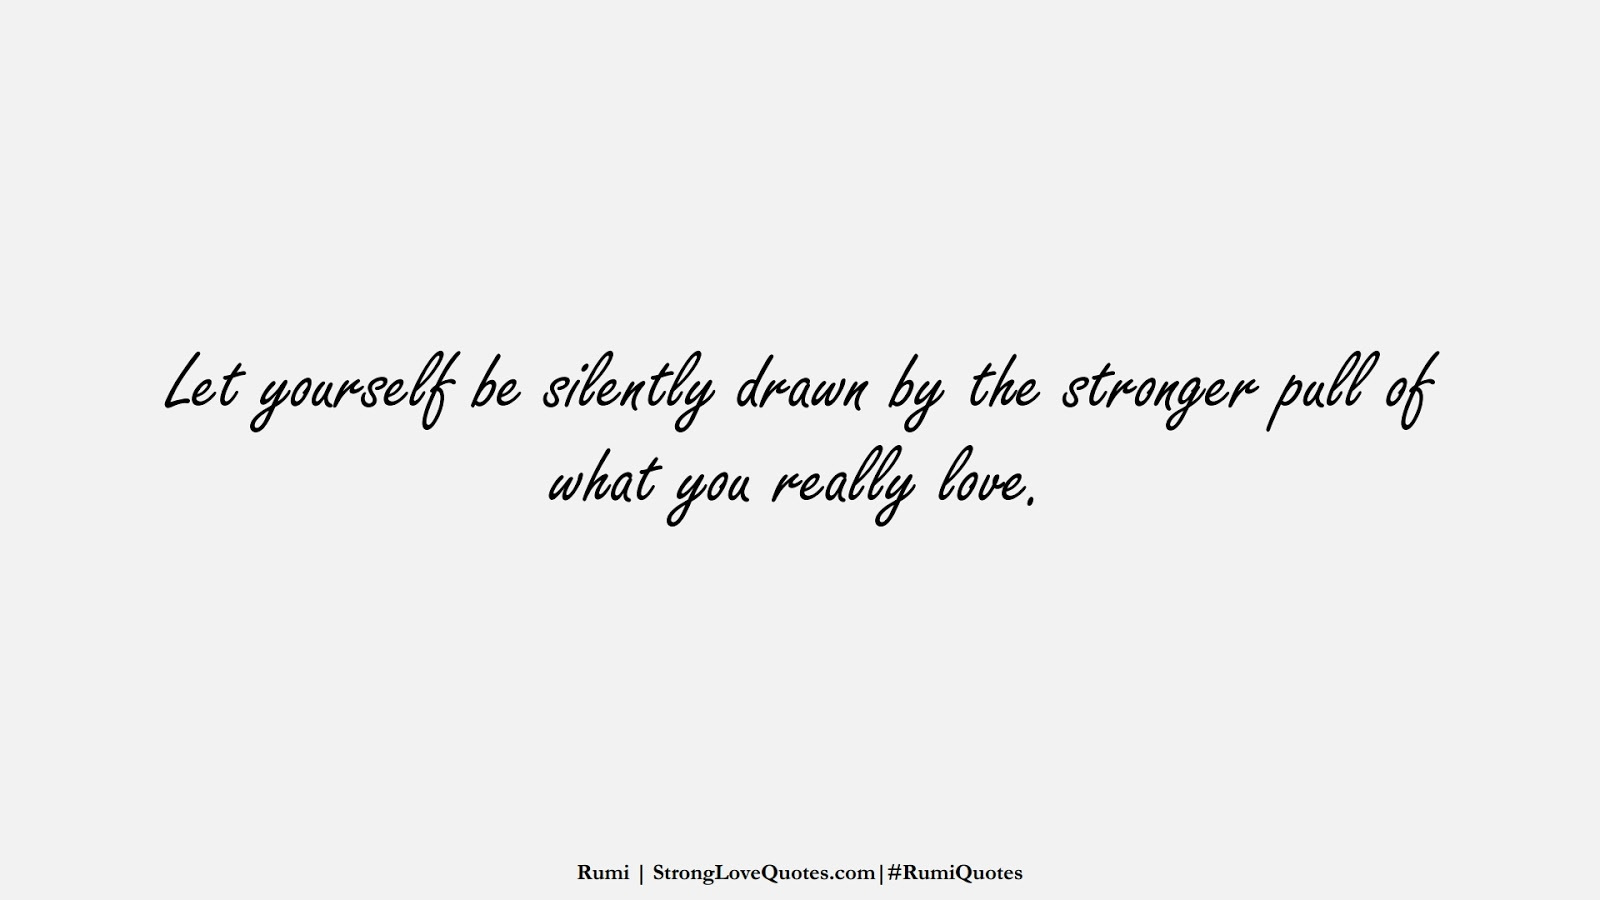 Let yourself be silently drawn by the stronger pull of what you really love. (Rumi);  #RumiQuotes